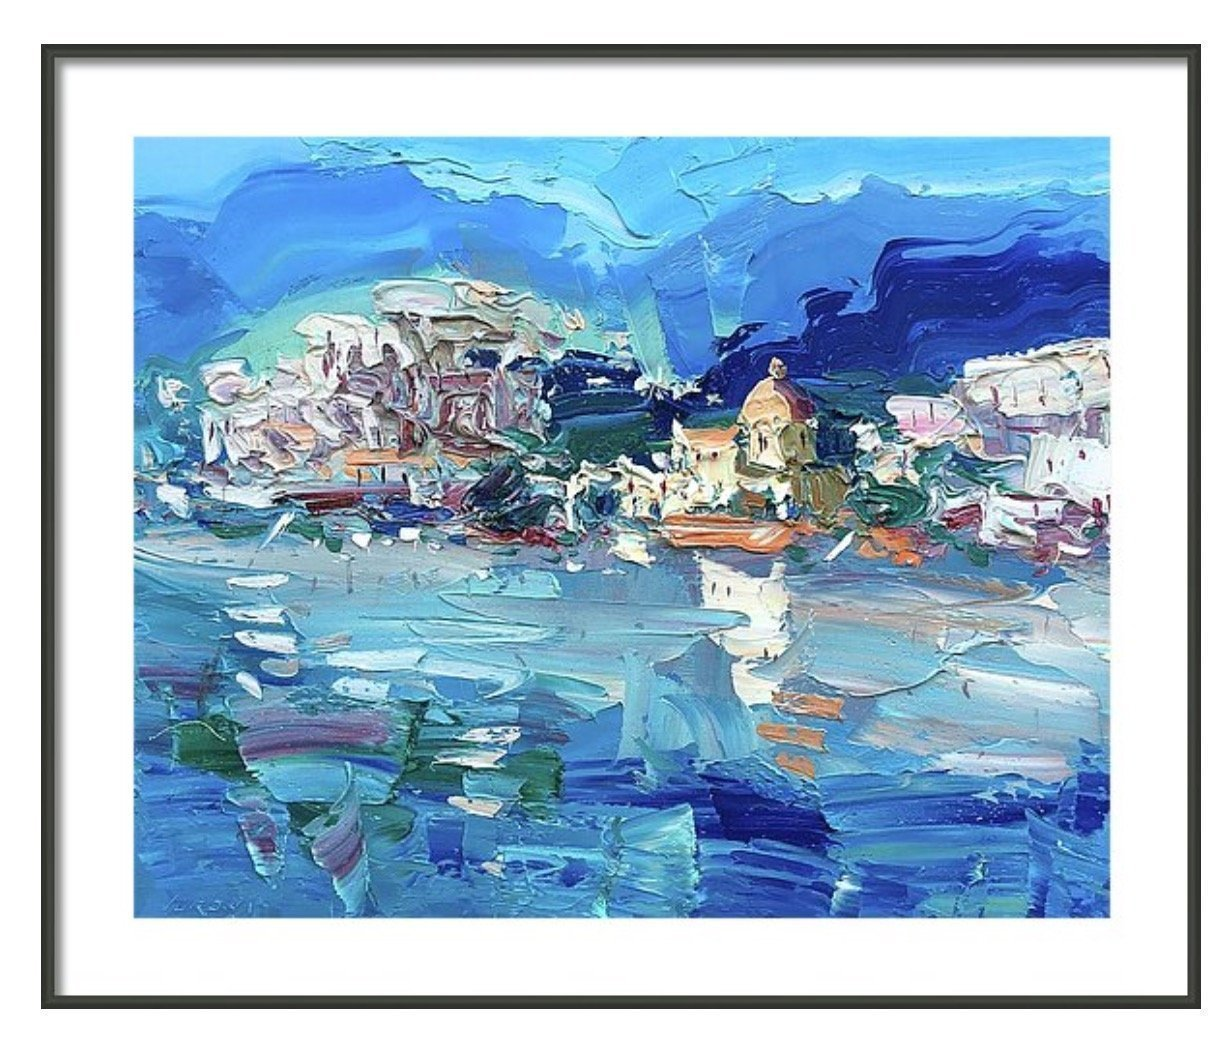 Amazon.com: Abstract Positano Art Print Paper and Canvas (8x10 11x14 ...